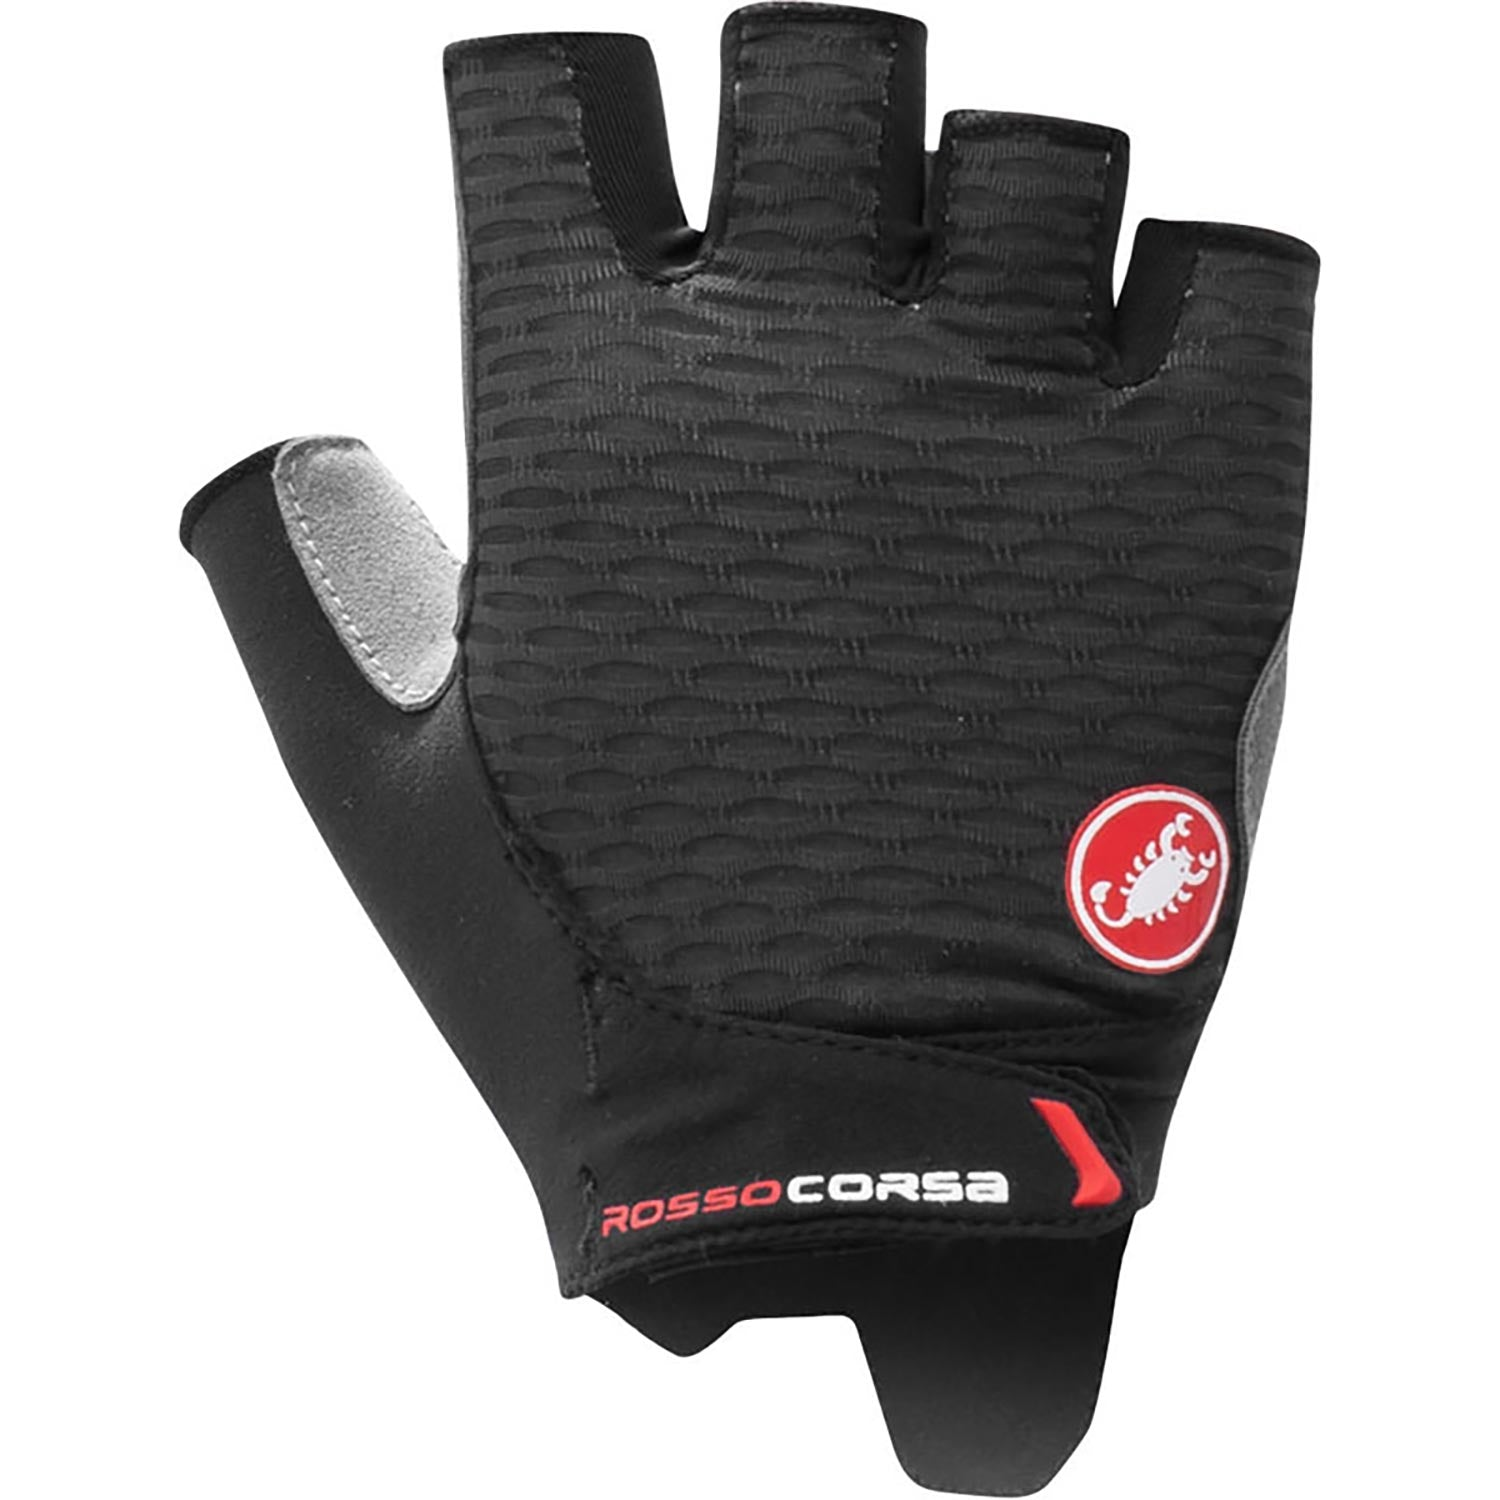 Castelli-Castelli Rosso Corsa 2 Women's Gloves-Black-XS-CS210610101-saddleback-elite-performance-cycling